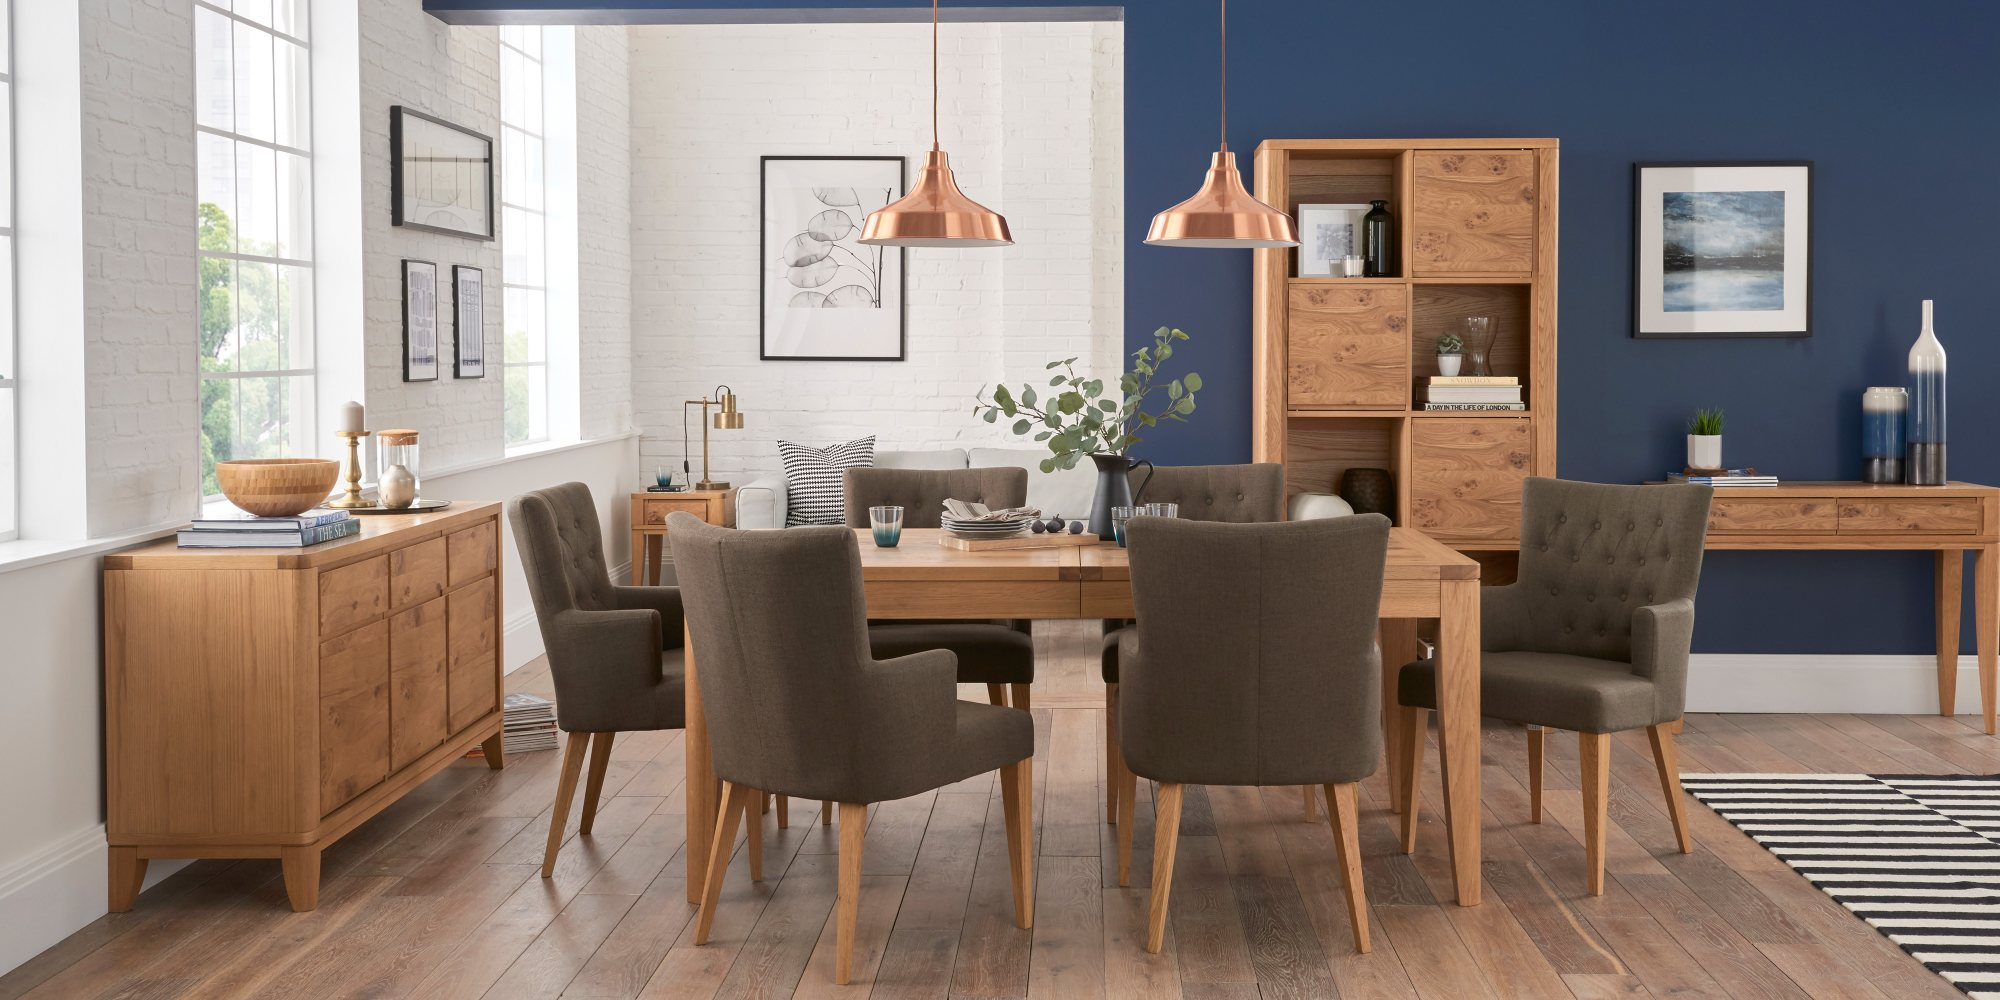 WILLOW PARK DINING SET WITH UPH ARM CHAIRS L180cm EXTENDING TO L230cm